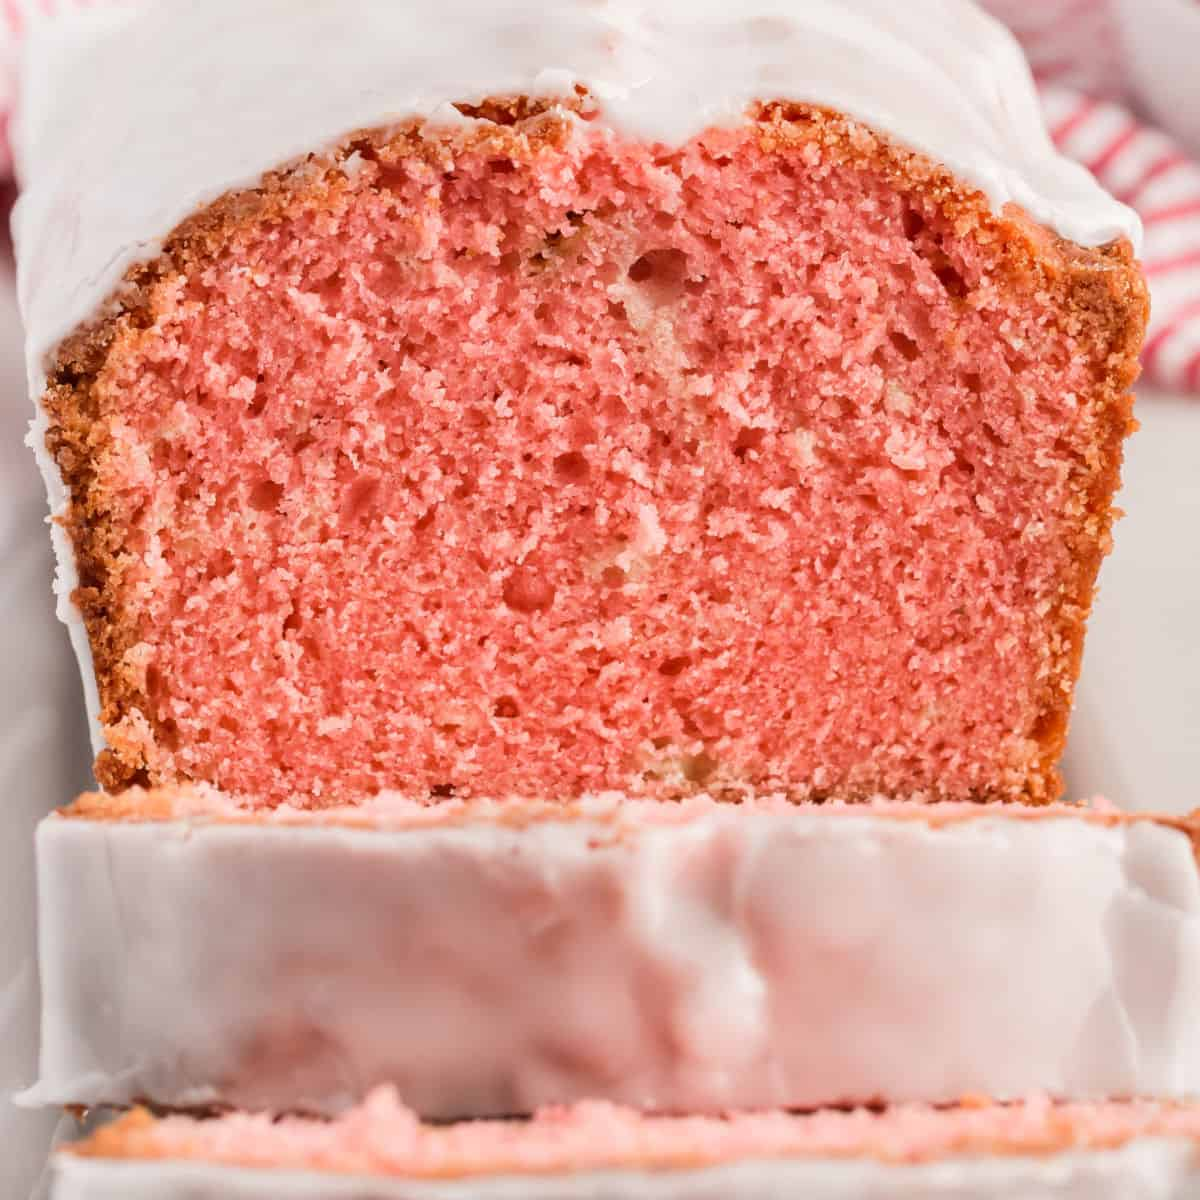 square image of loaf of strawberry pound cake with champagne glaze with slices cut to show inside